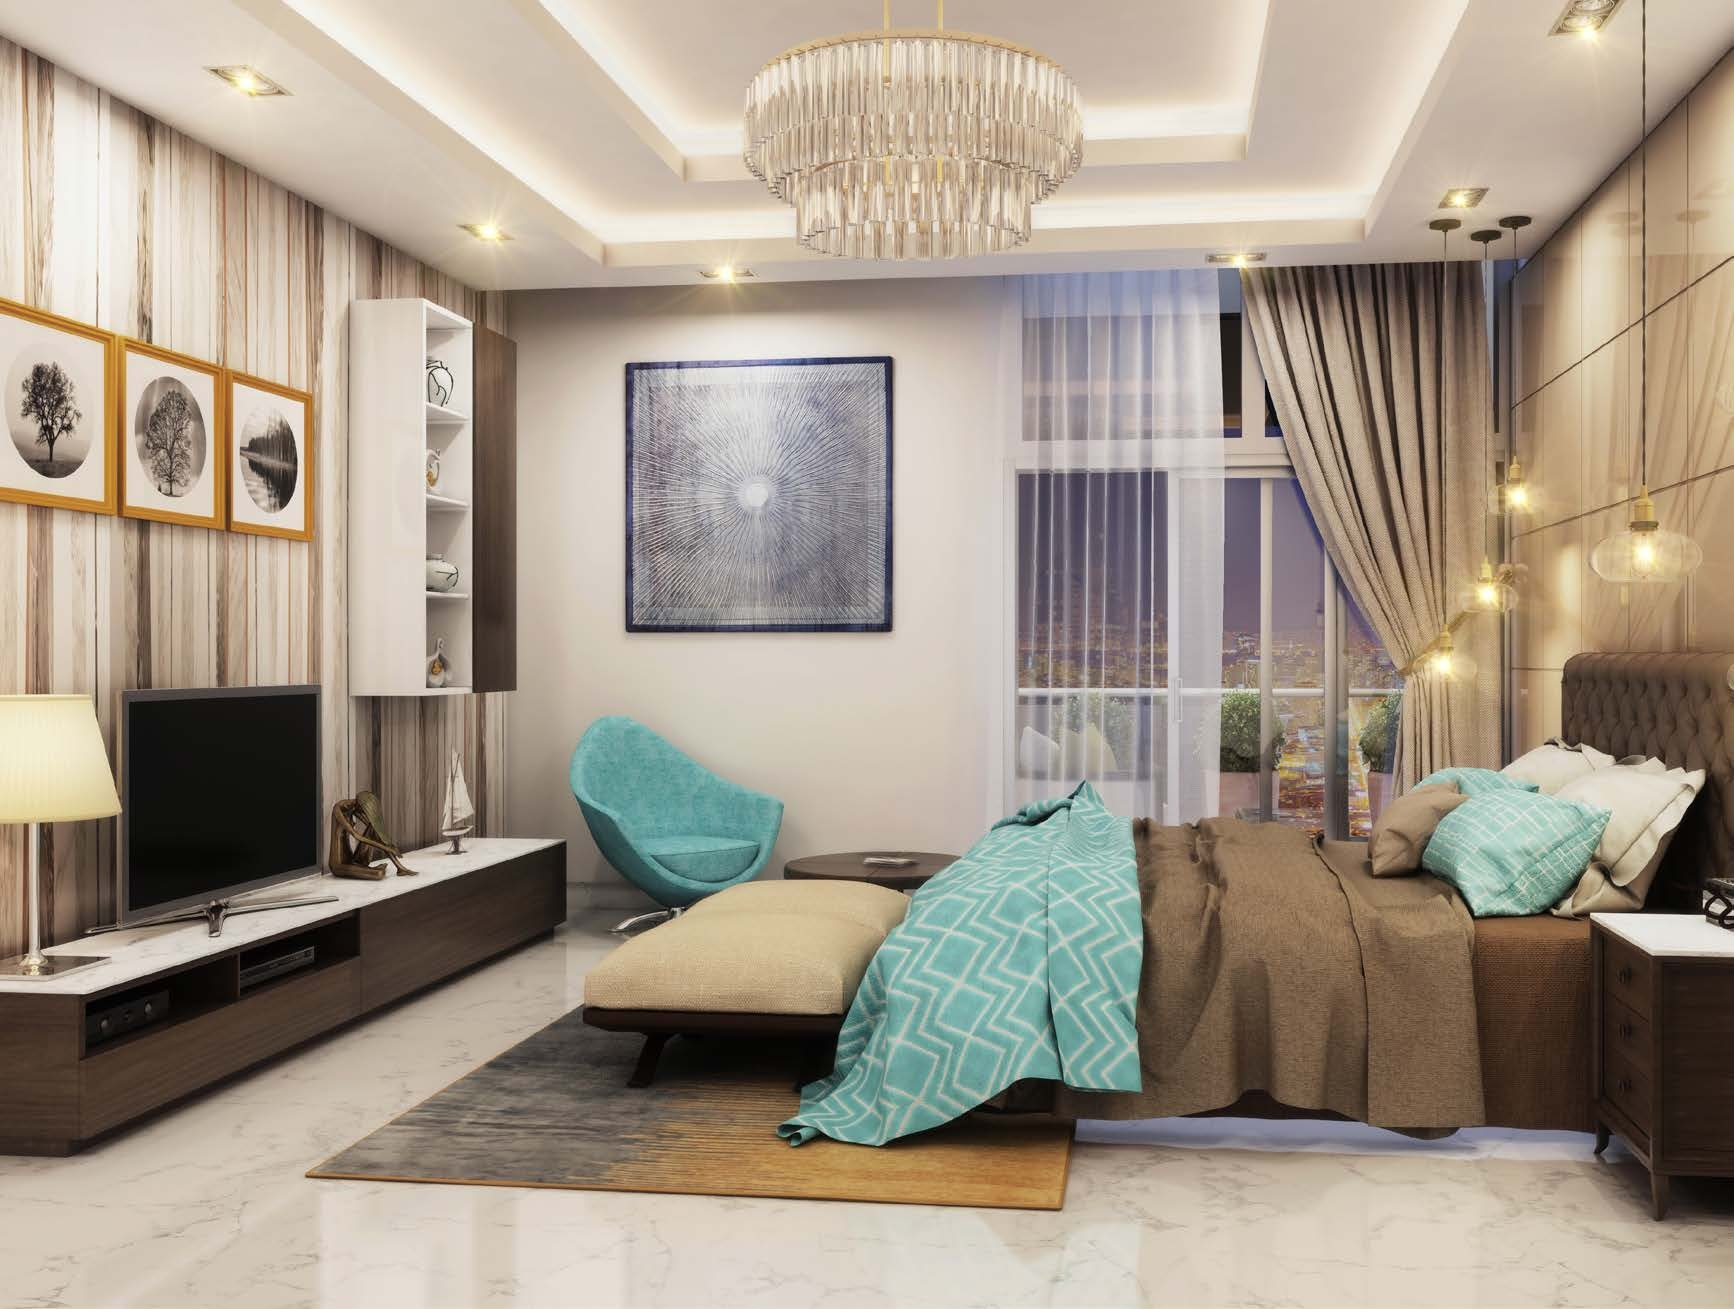 Fashionable living spaces 124 One bedroom apartments